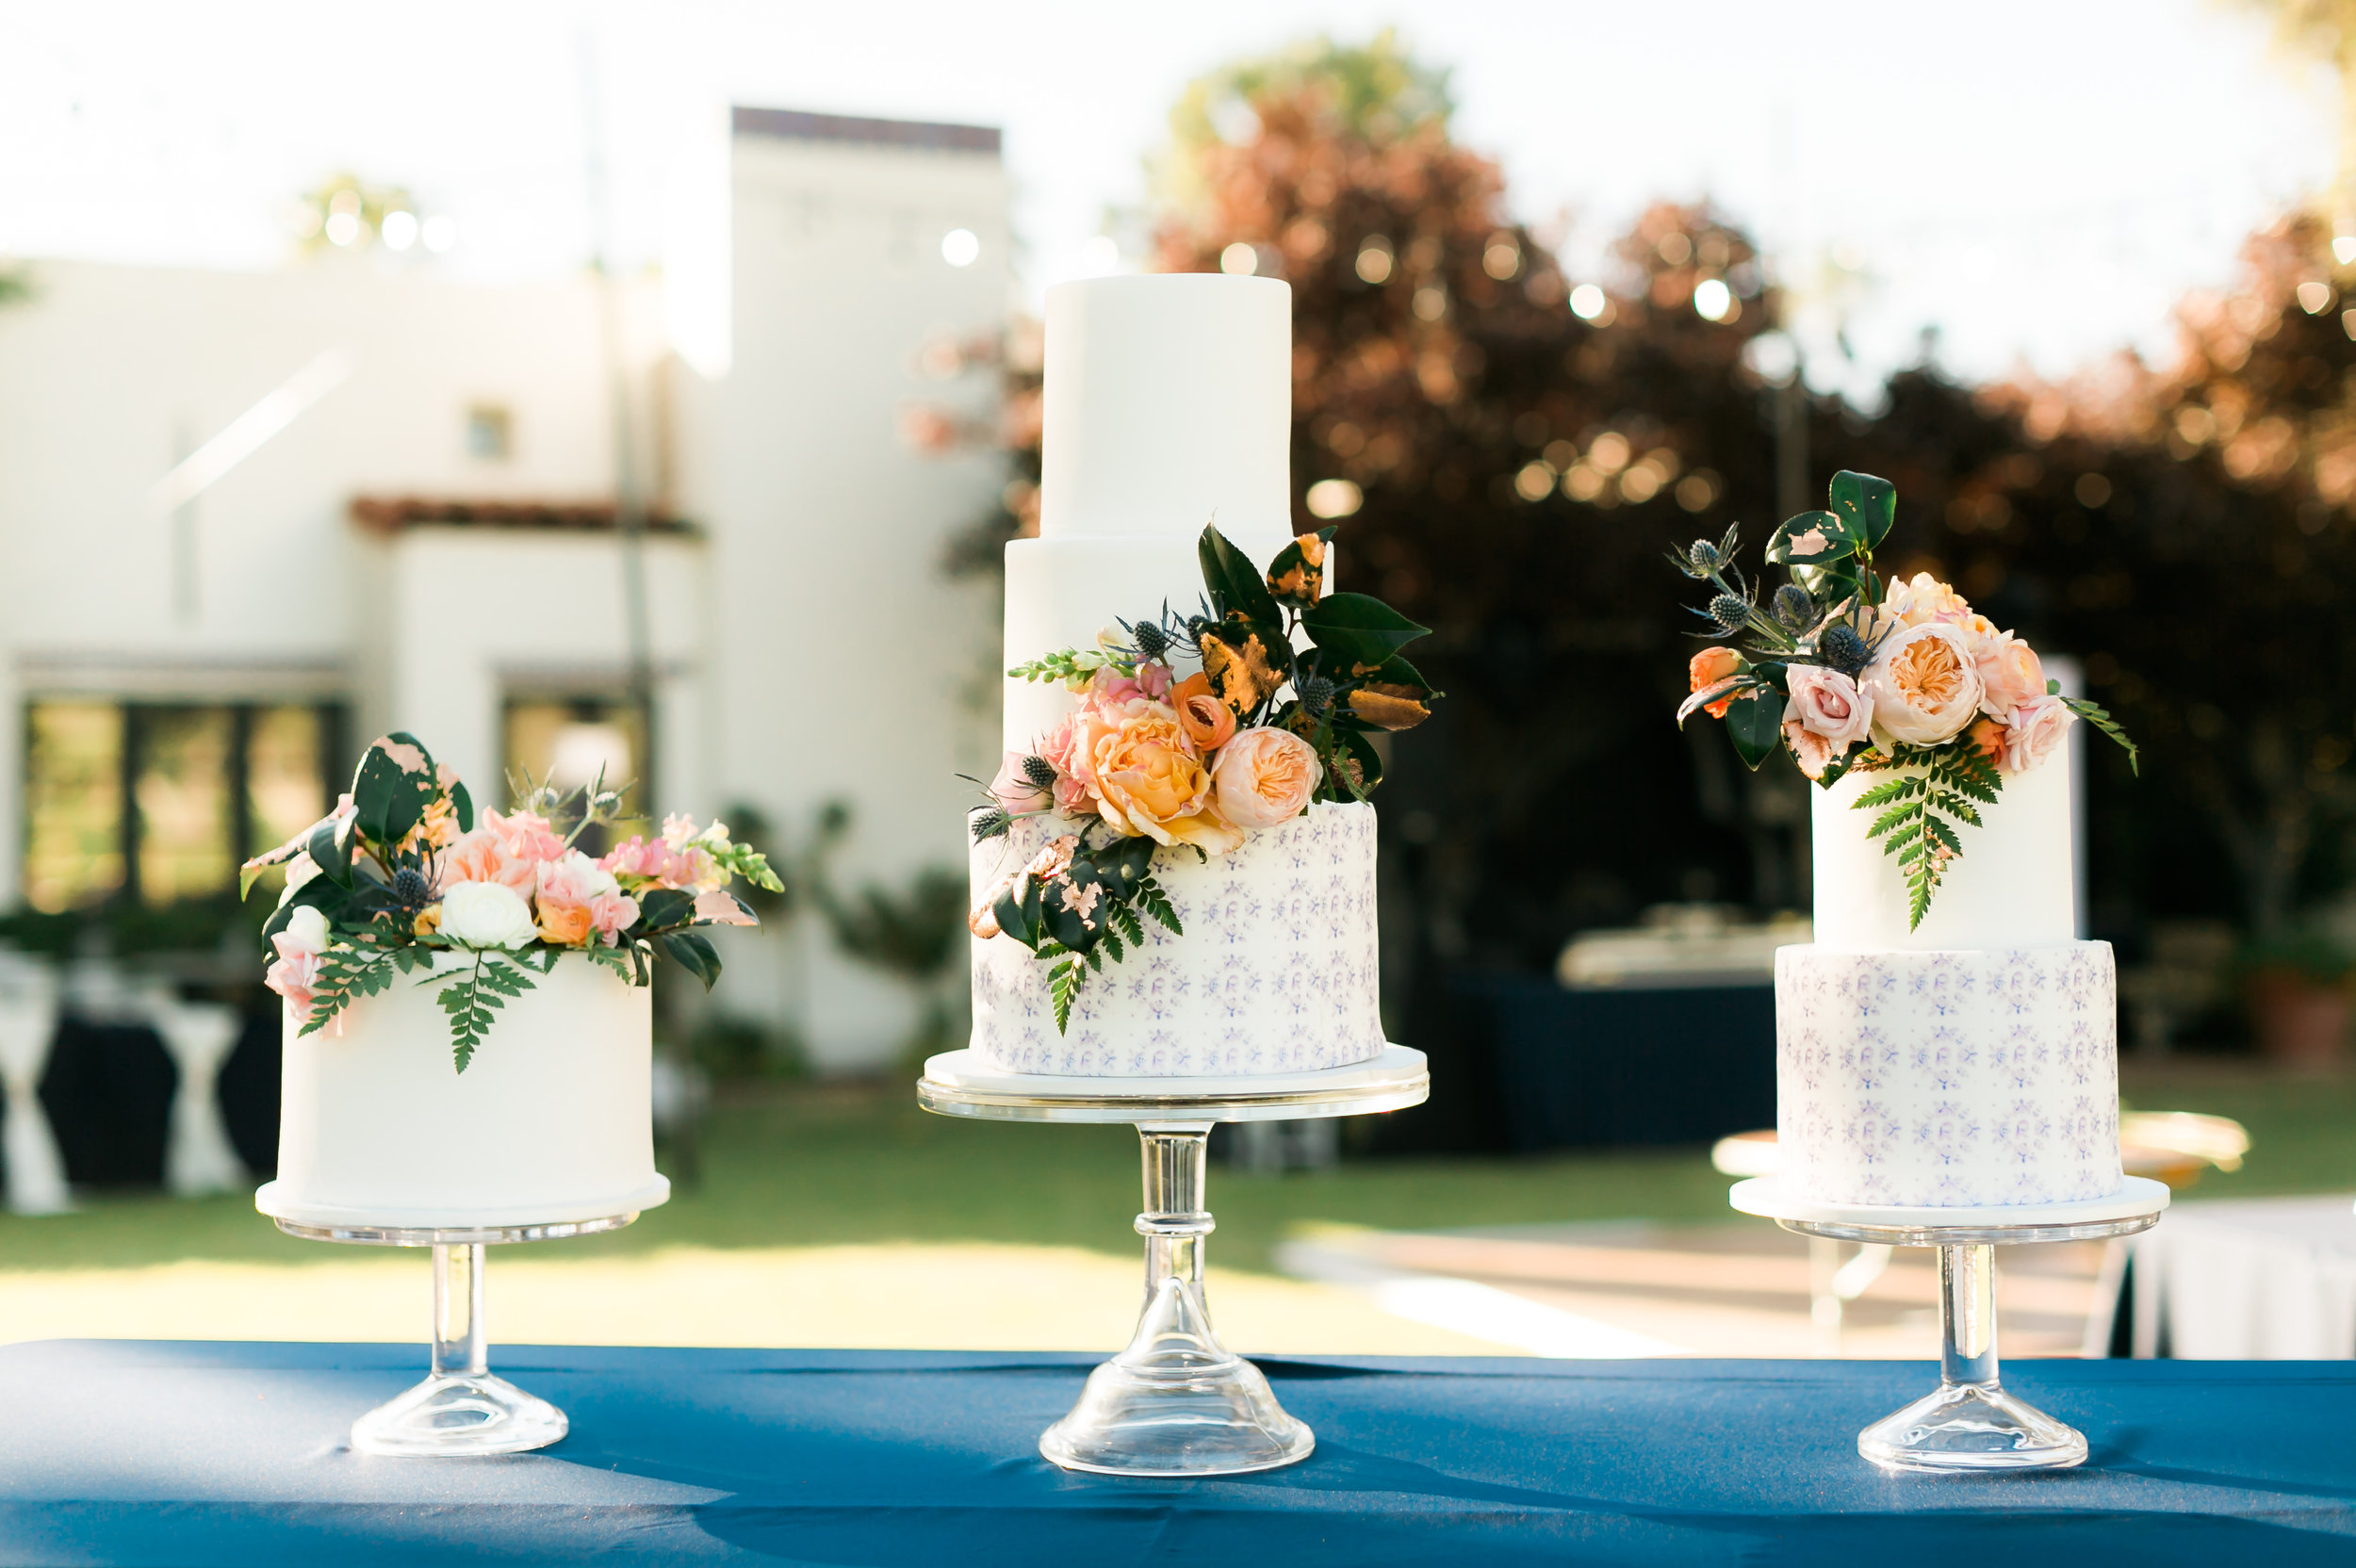 Private Estate Wedding in Phoenix - Wedding Cakes with Custom Pattern